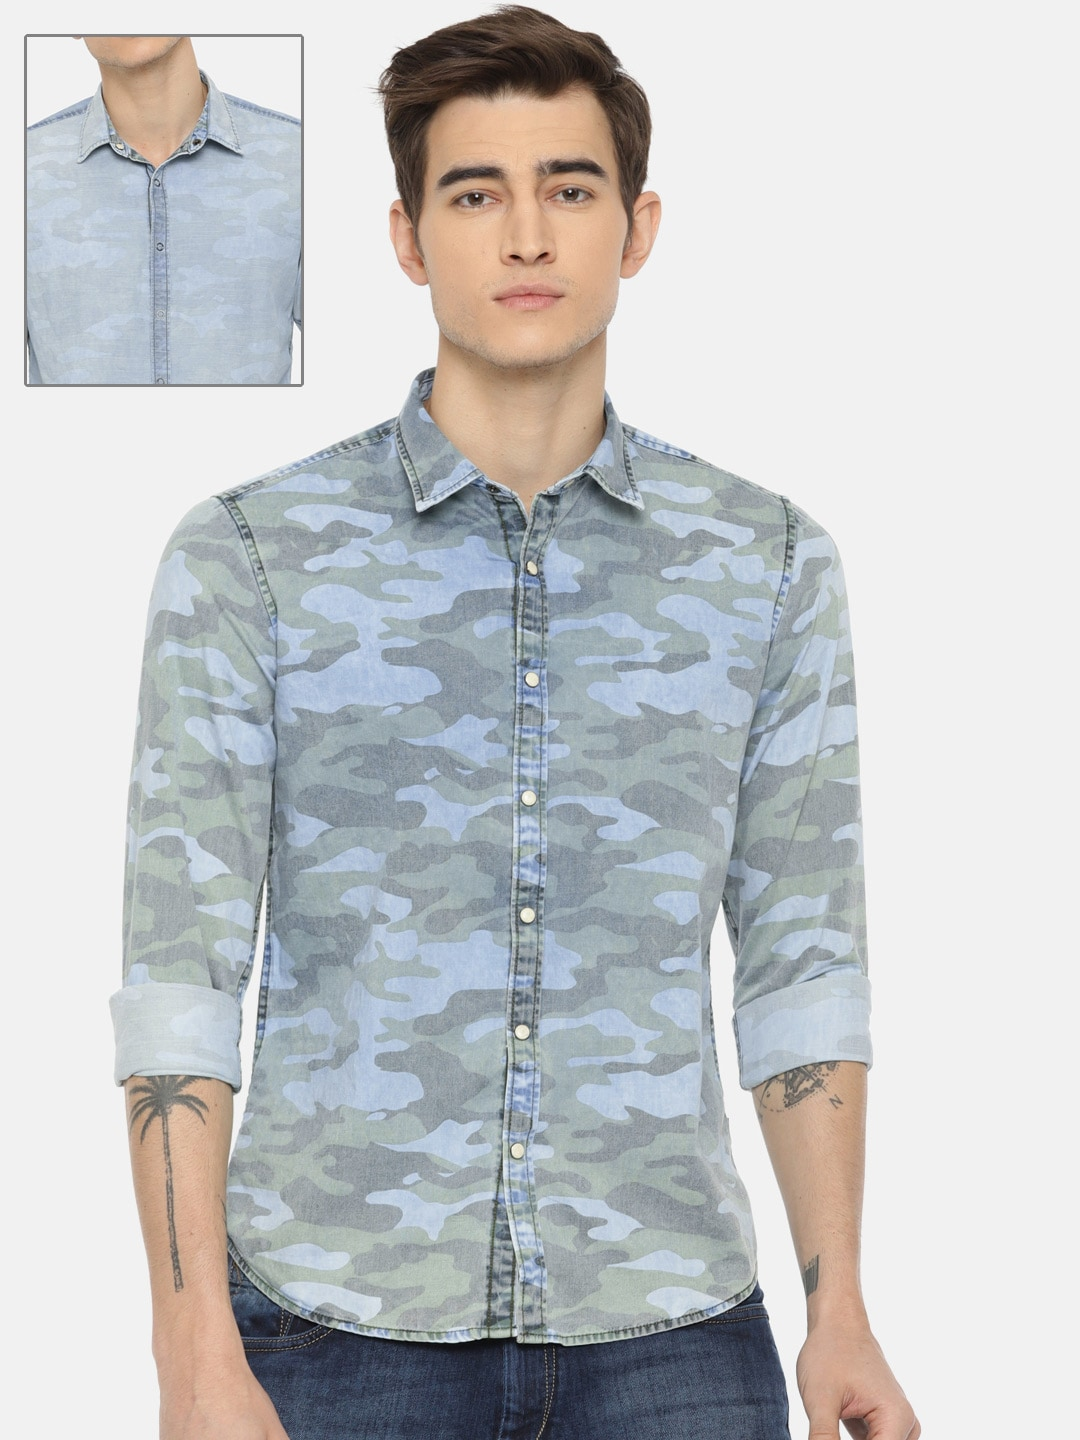 9a6ff11aa7d Pepe Jeans - Buy Pepe Jeans Clothing Online in India